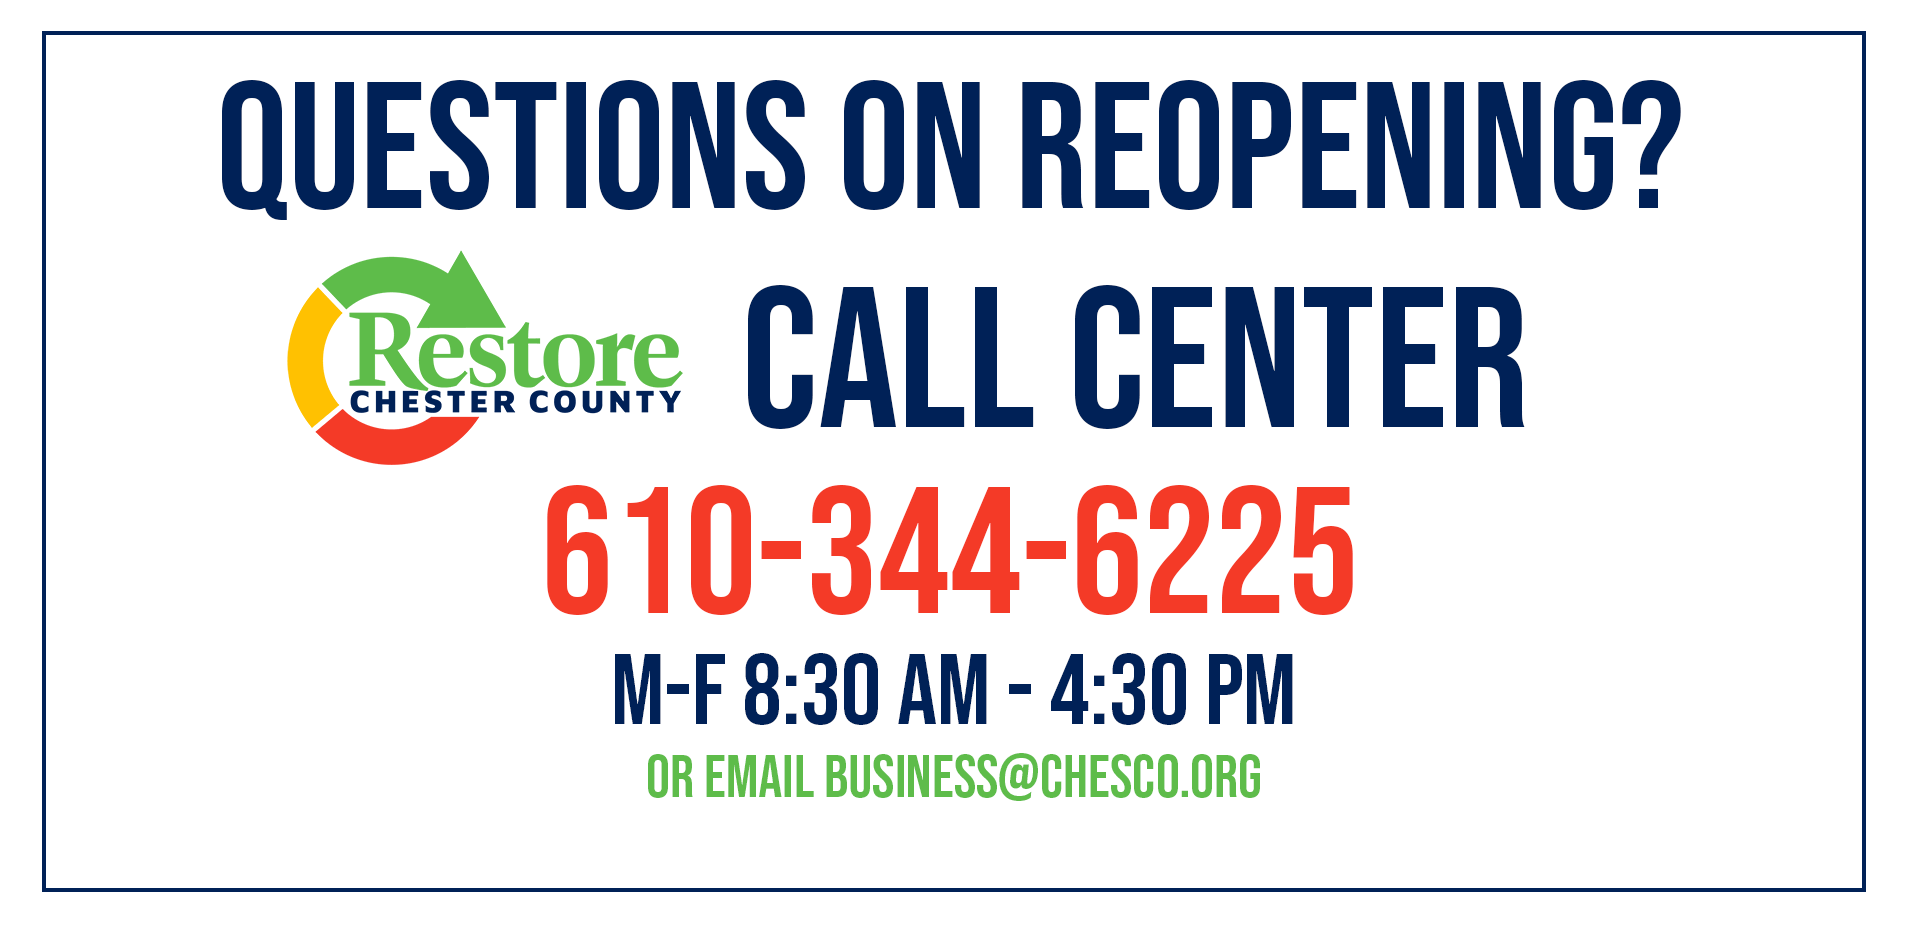 Restore Chester County Call Center